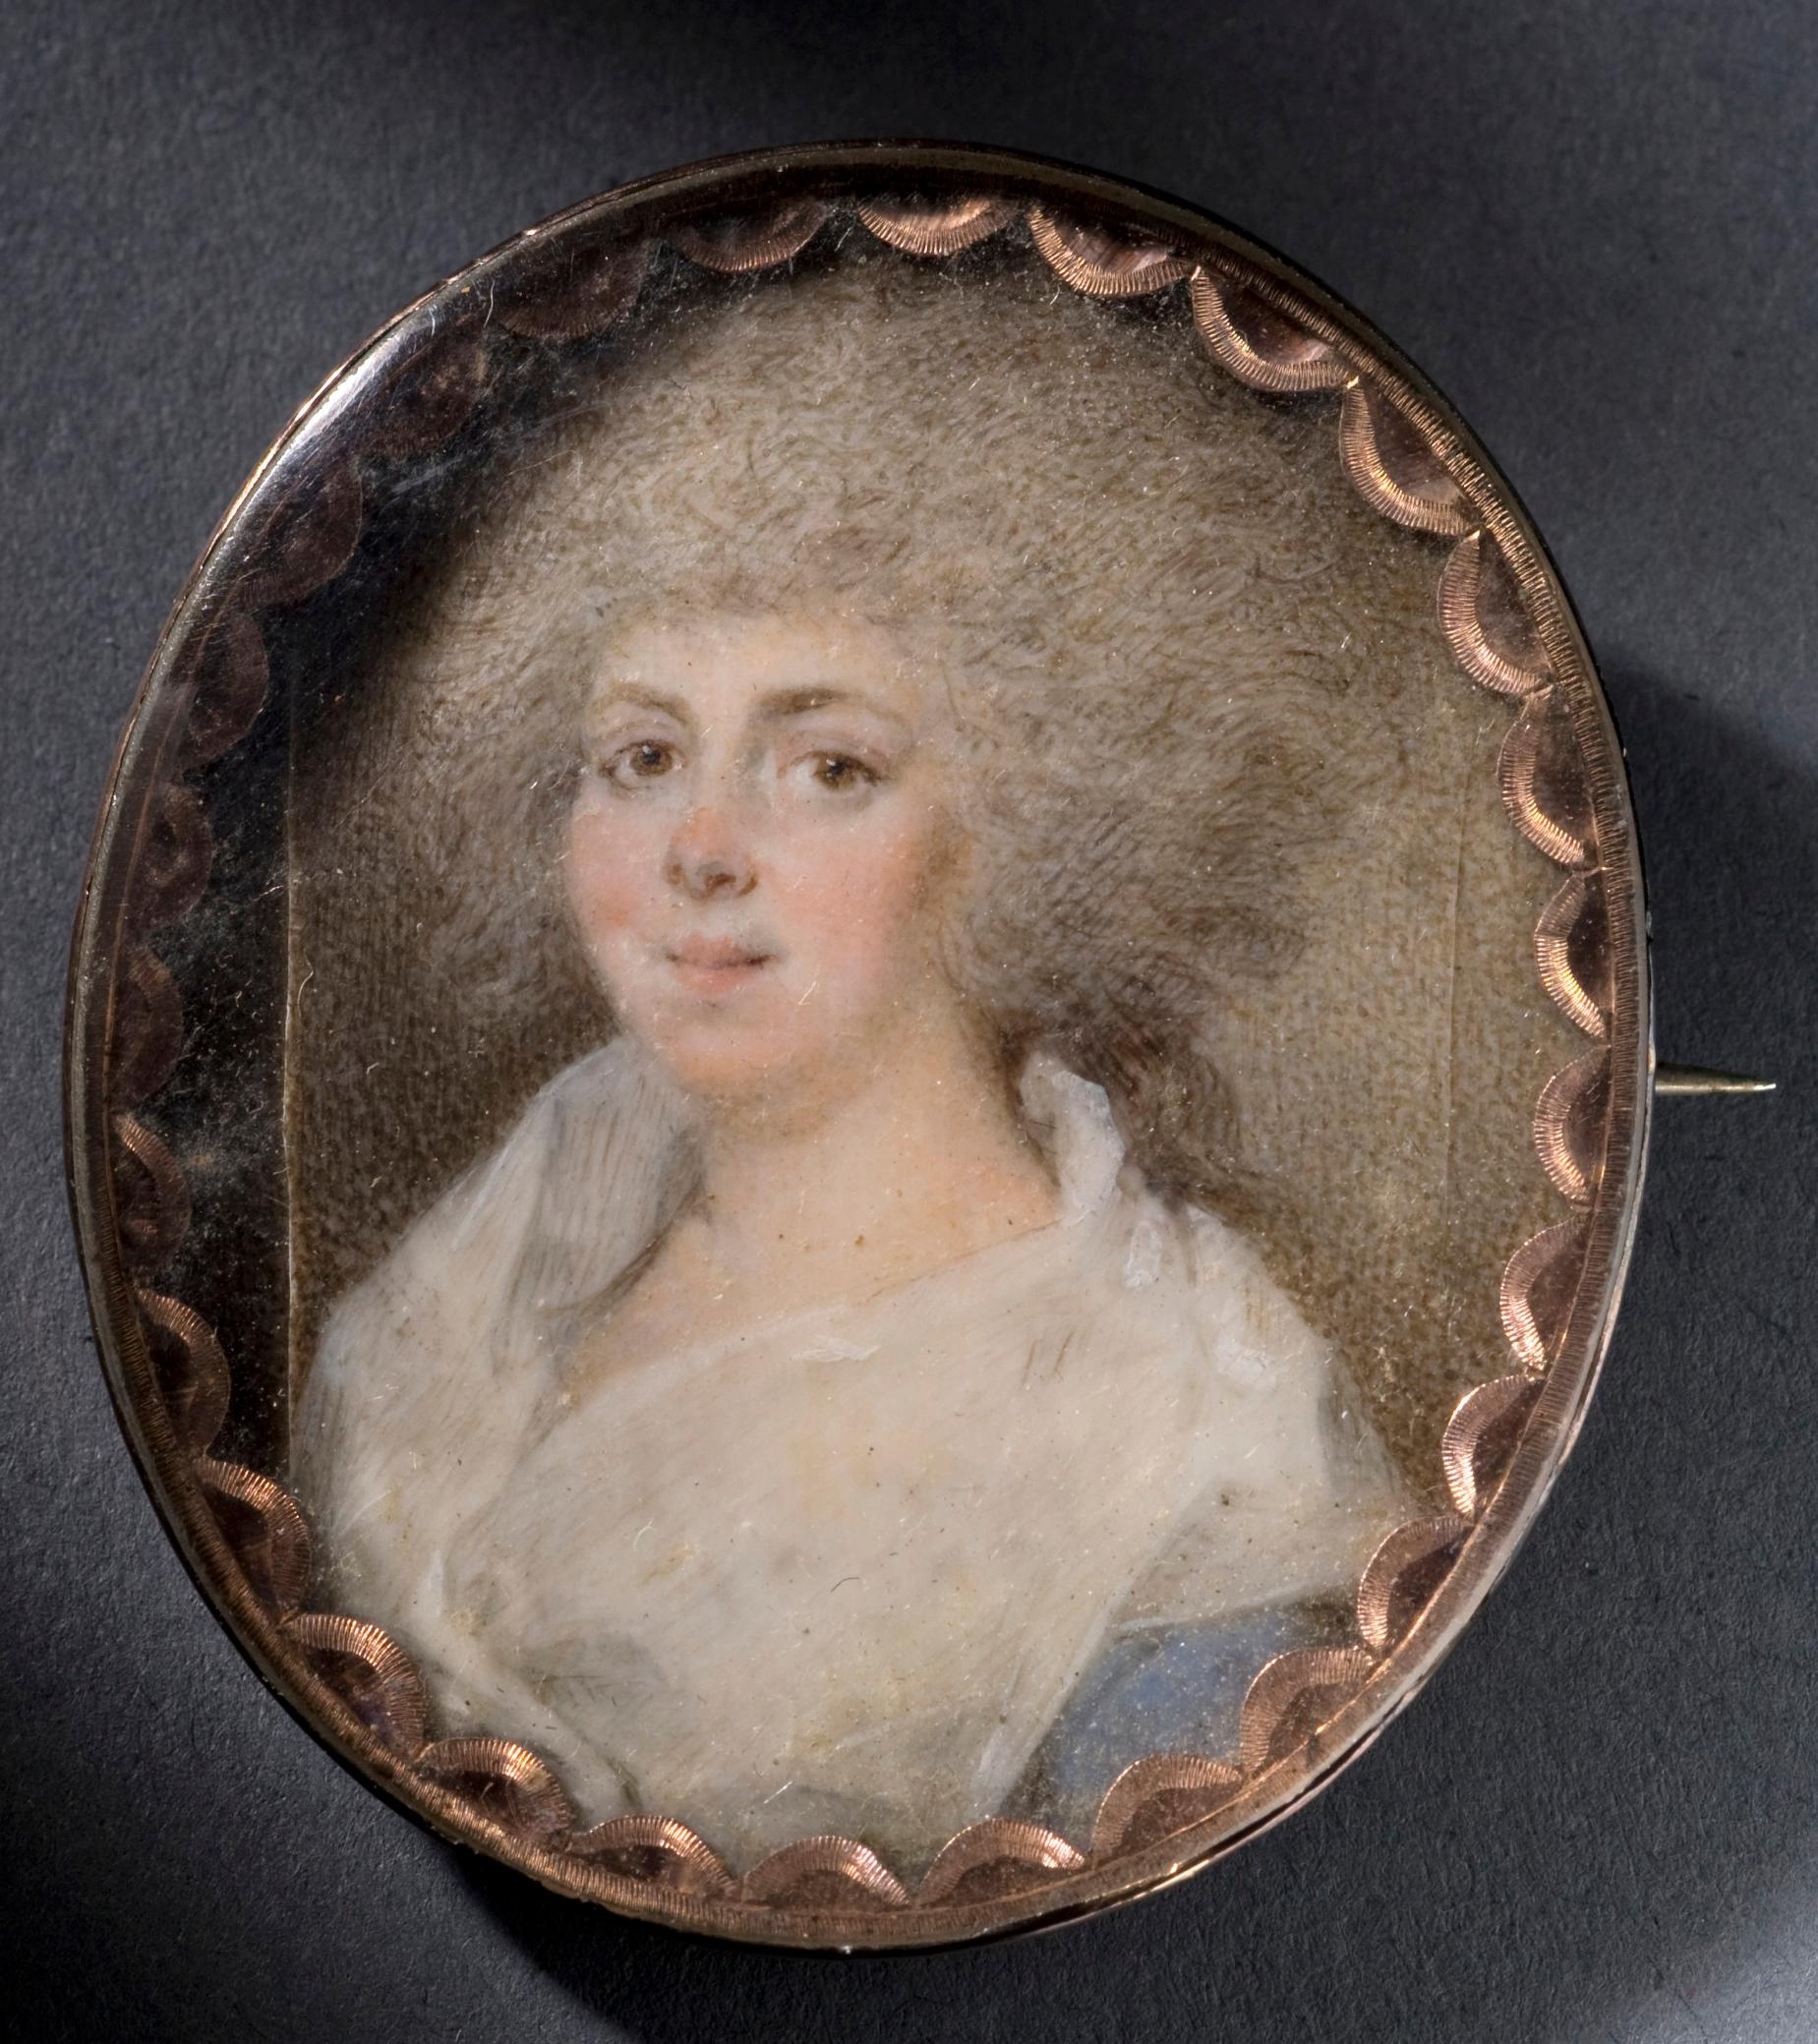 This miniature portrait of Eleanor Calvert Custis is set in a gold oval broach. It was made in 1782, one year prior to wedding David Stuart. MVLA.